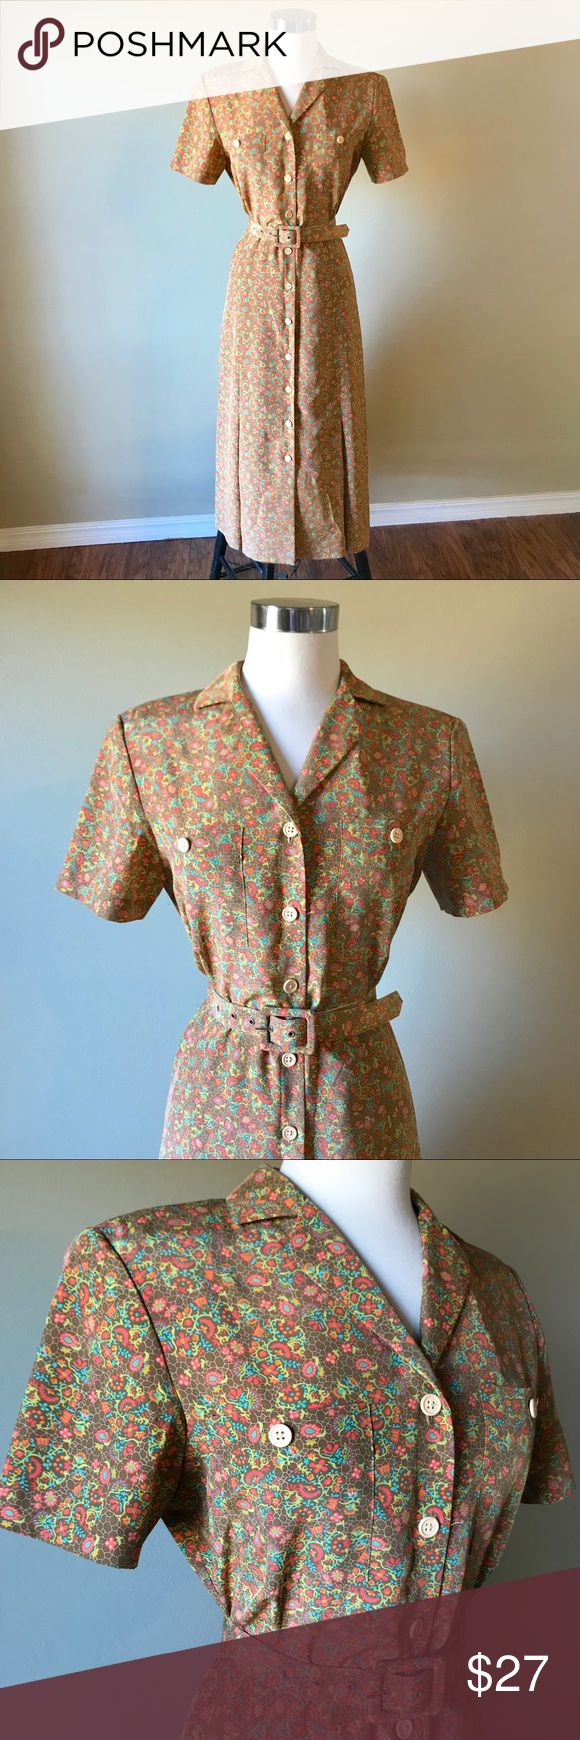 """Vintage Brown Floral Midi Secretary Day Dress Leslie Fay brown vintage midi day dress with allover floral print. Button down front and back elastic waist. Comes with matching fabric belt. Labeled as a size 8P. Measures 19"""" armpit to armpit, flat waist stretches from 14""""-16"""", 49"""" long. Best for sizes 6/8 (M). In great vintage condition.   ⭐️⭐️Bundle and Save ⭐️⭐️  Tags: Modest length, appropriate, church, work, retro, cute dress, floral dress, flowers Vintage Dresses Midi"""